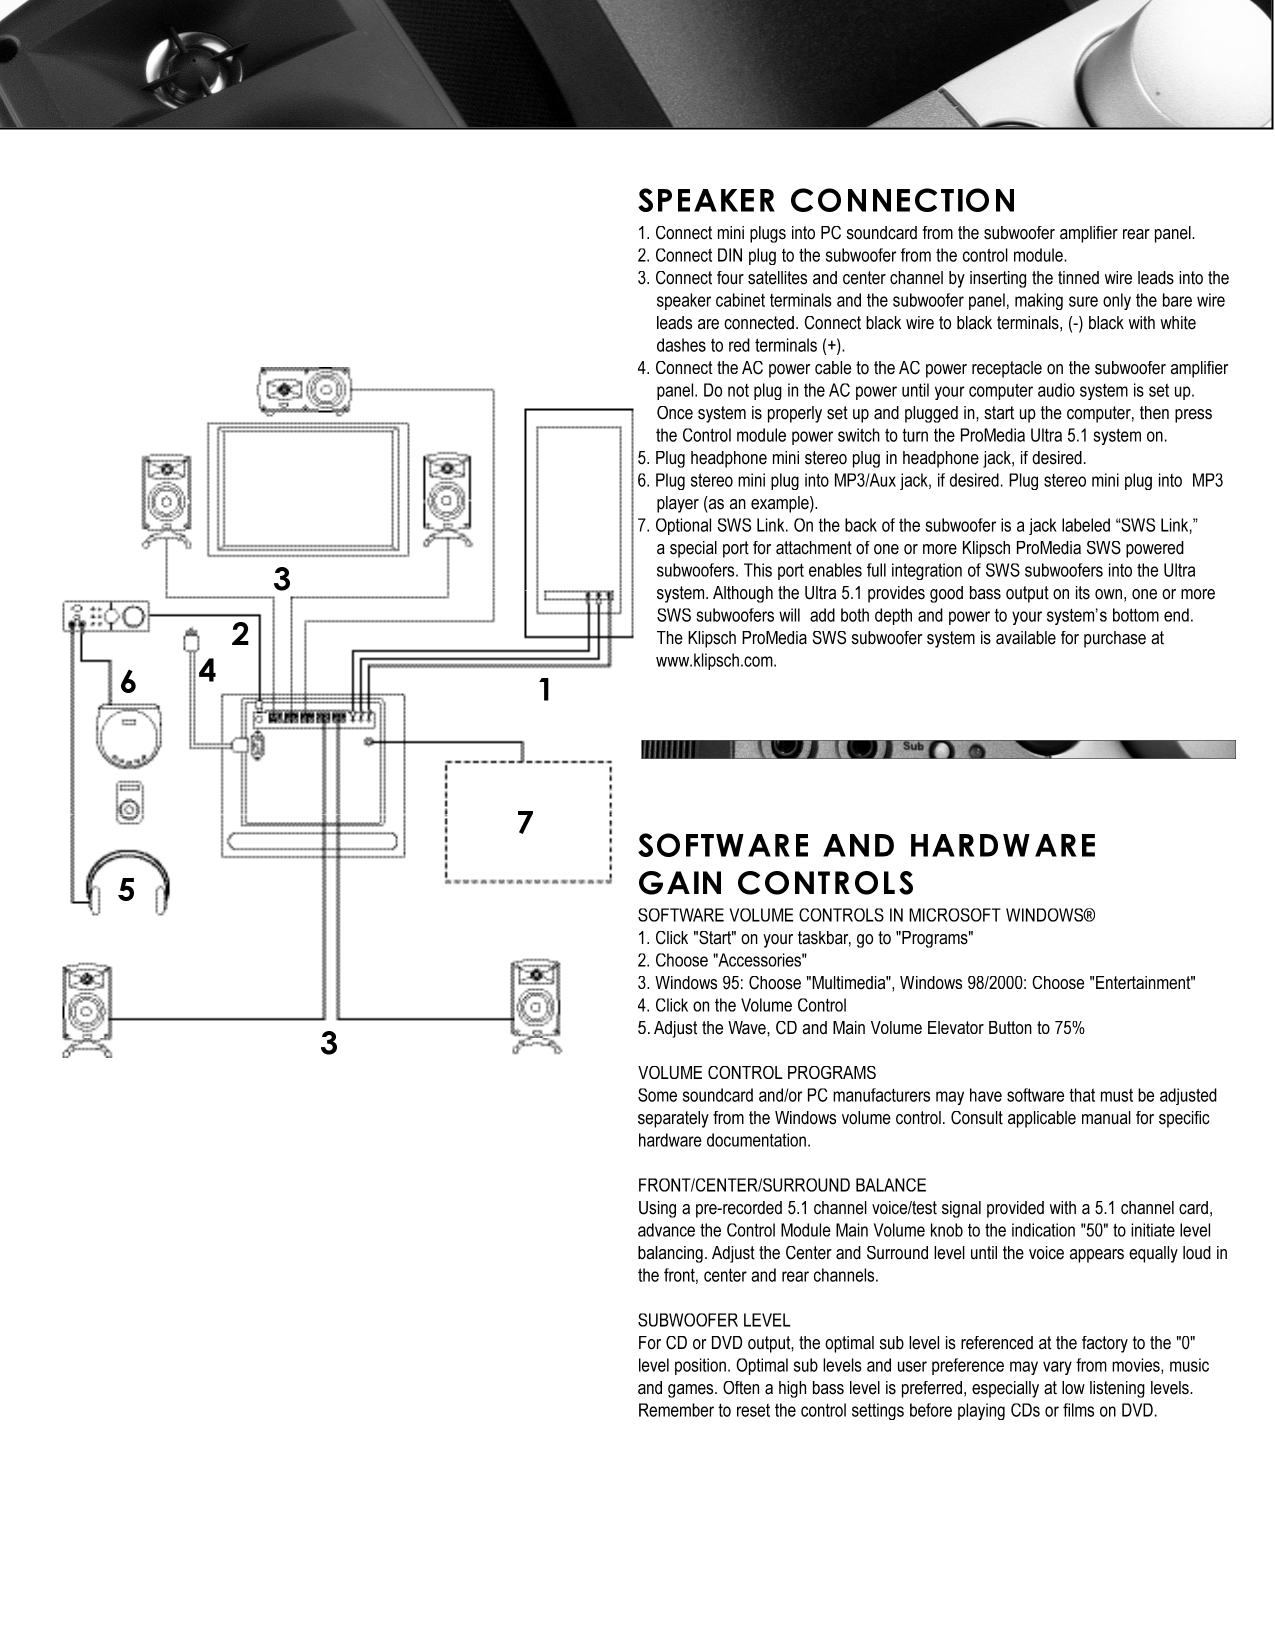 Amazing 5.1 Wiring Diagram Collection - Wiring Diagram Ideas ...